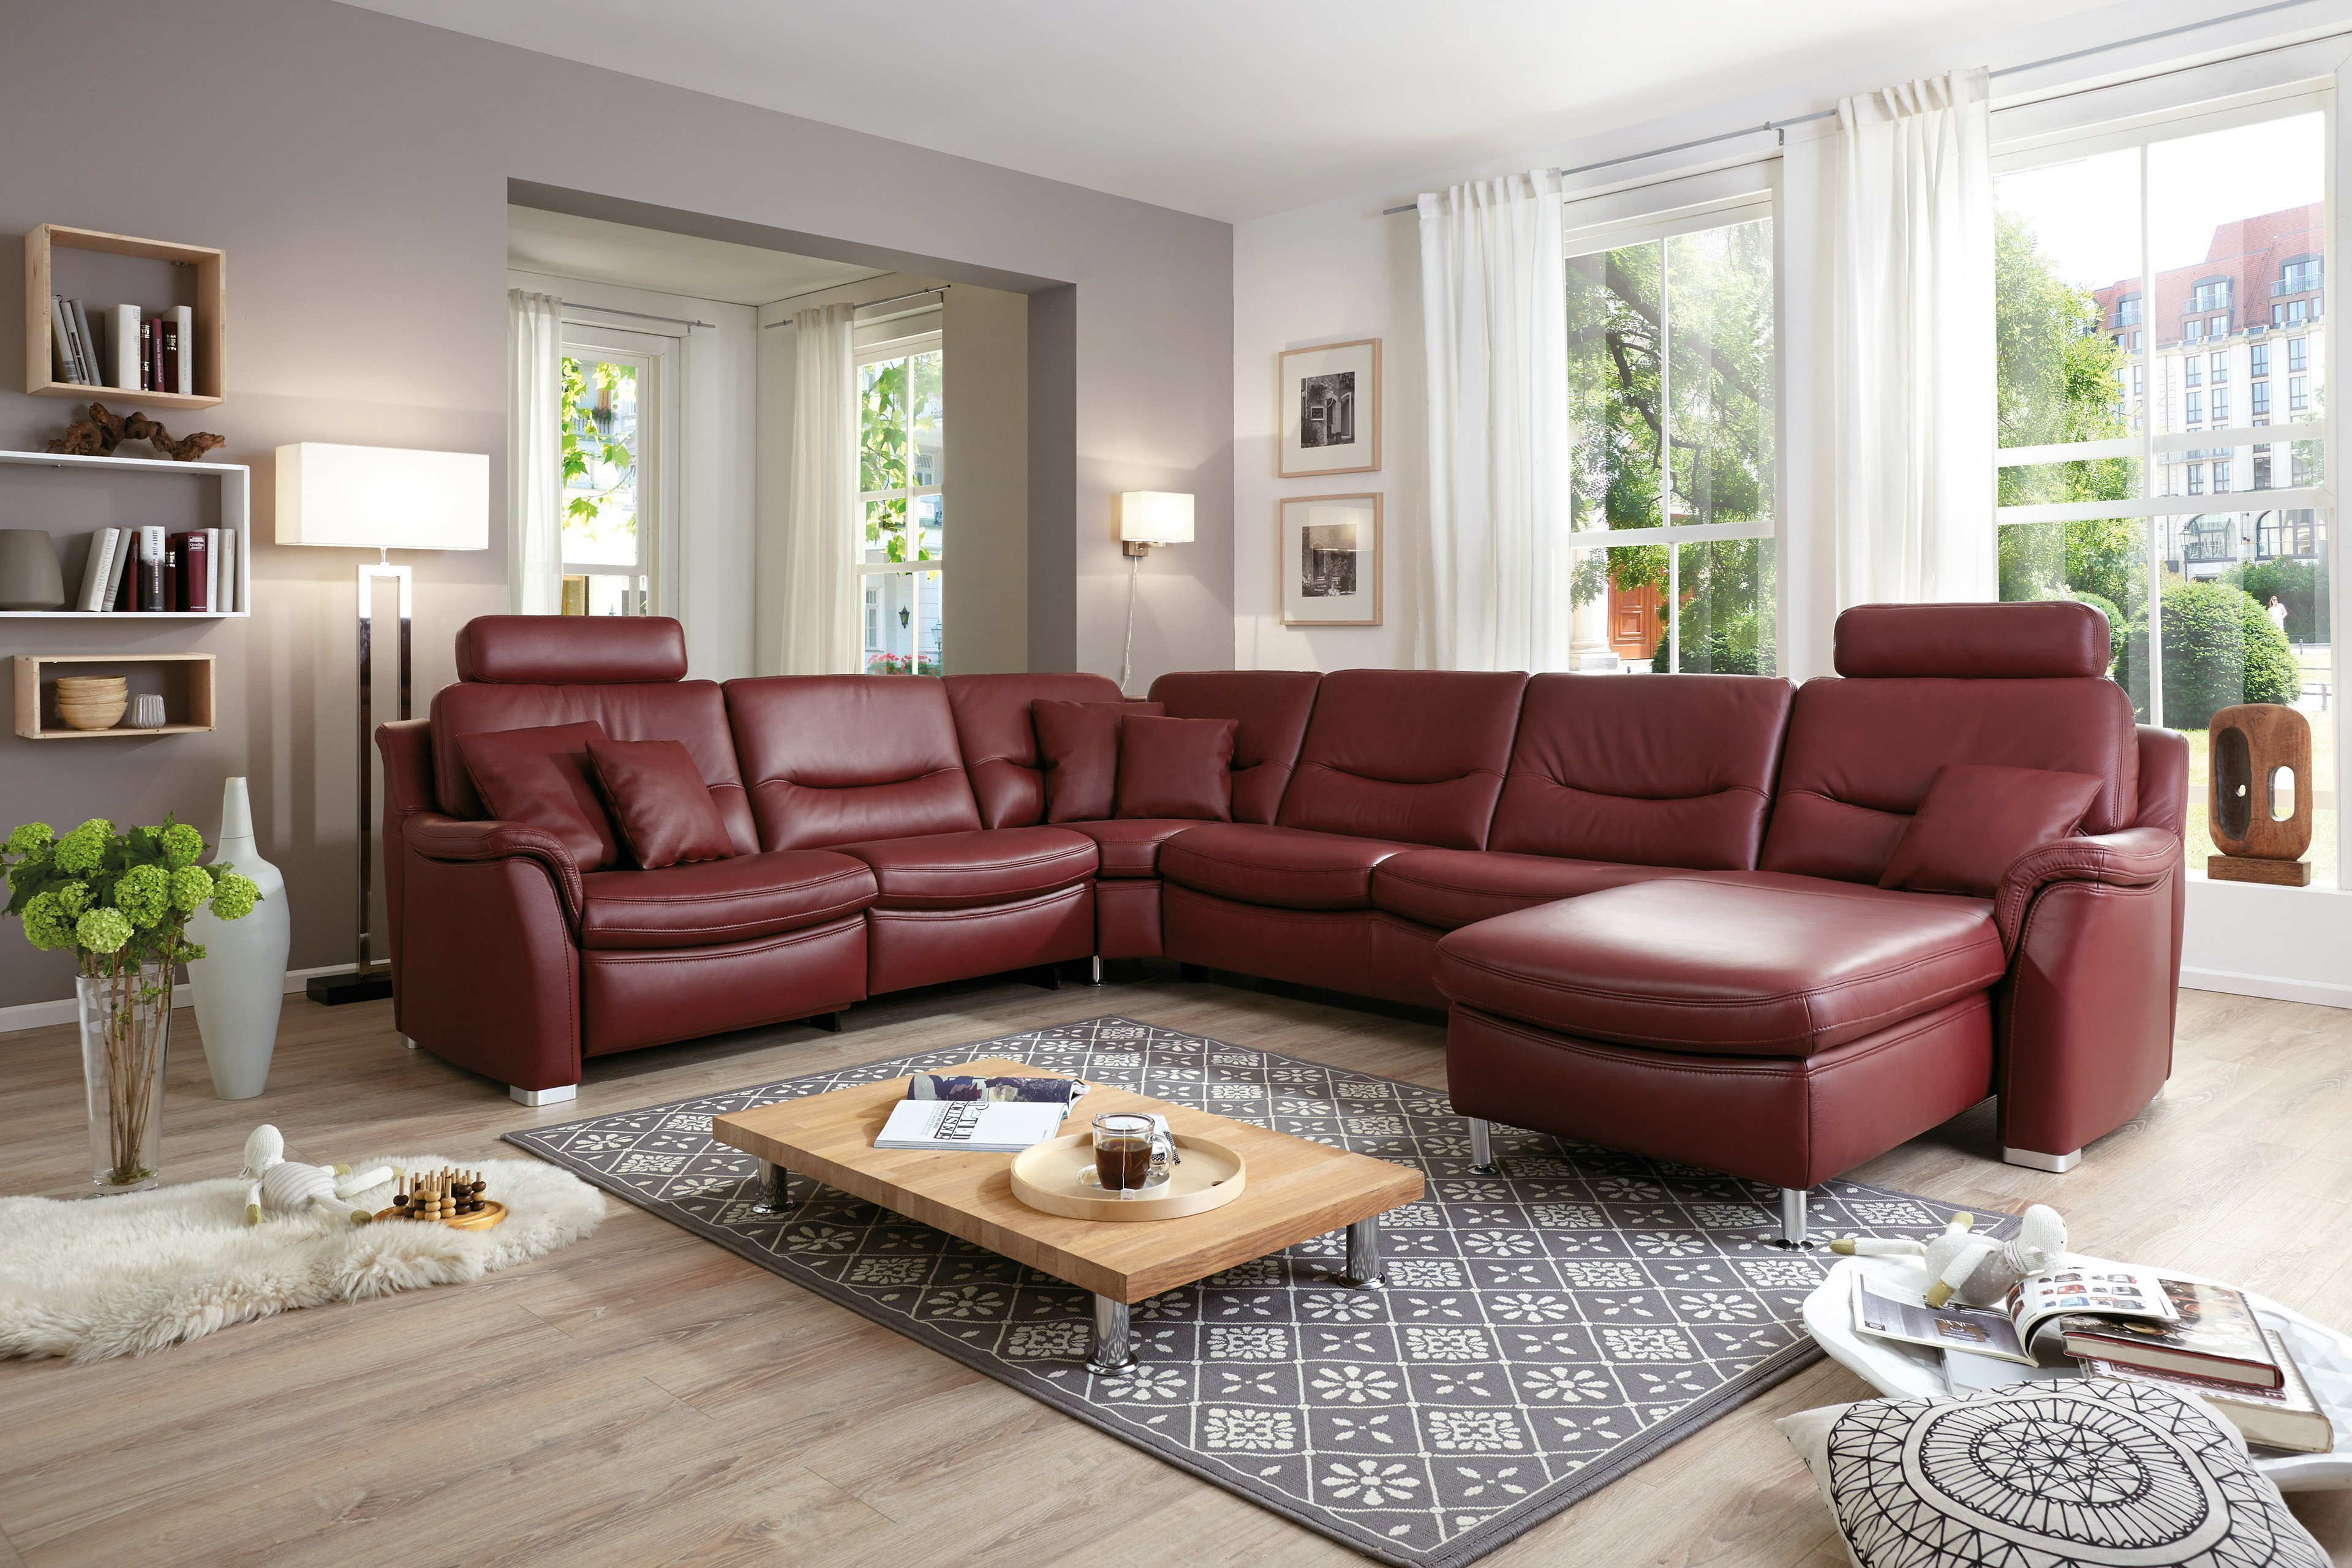 echtleder sofa elegant sofa nespolo sitzer dunkelbraun with echtleder sofa gebraucht ikea. Black Bedroom Furniture Sets. Home Design Ideas